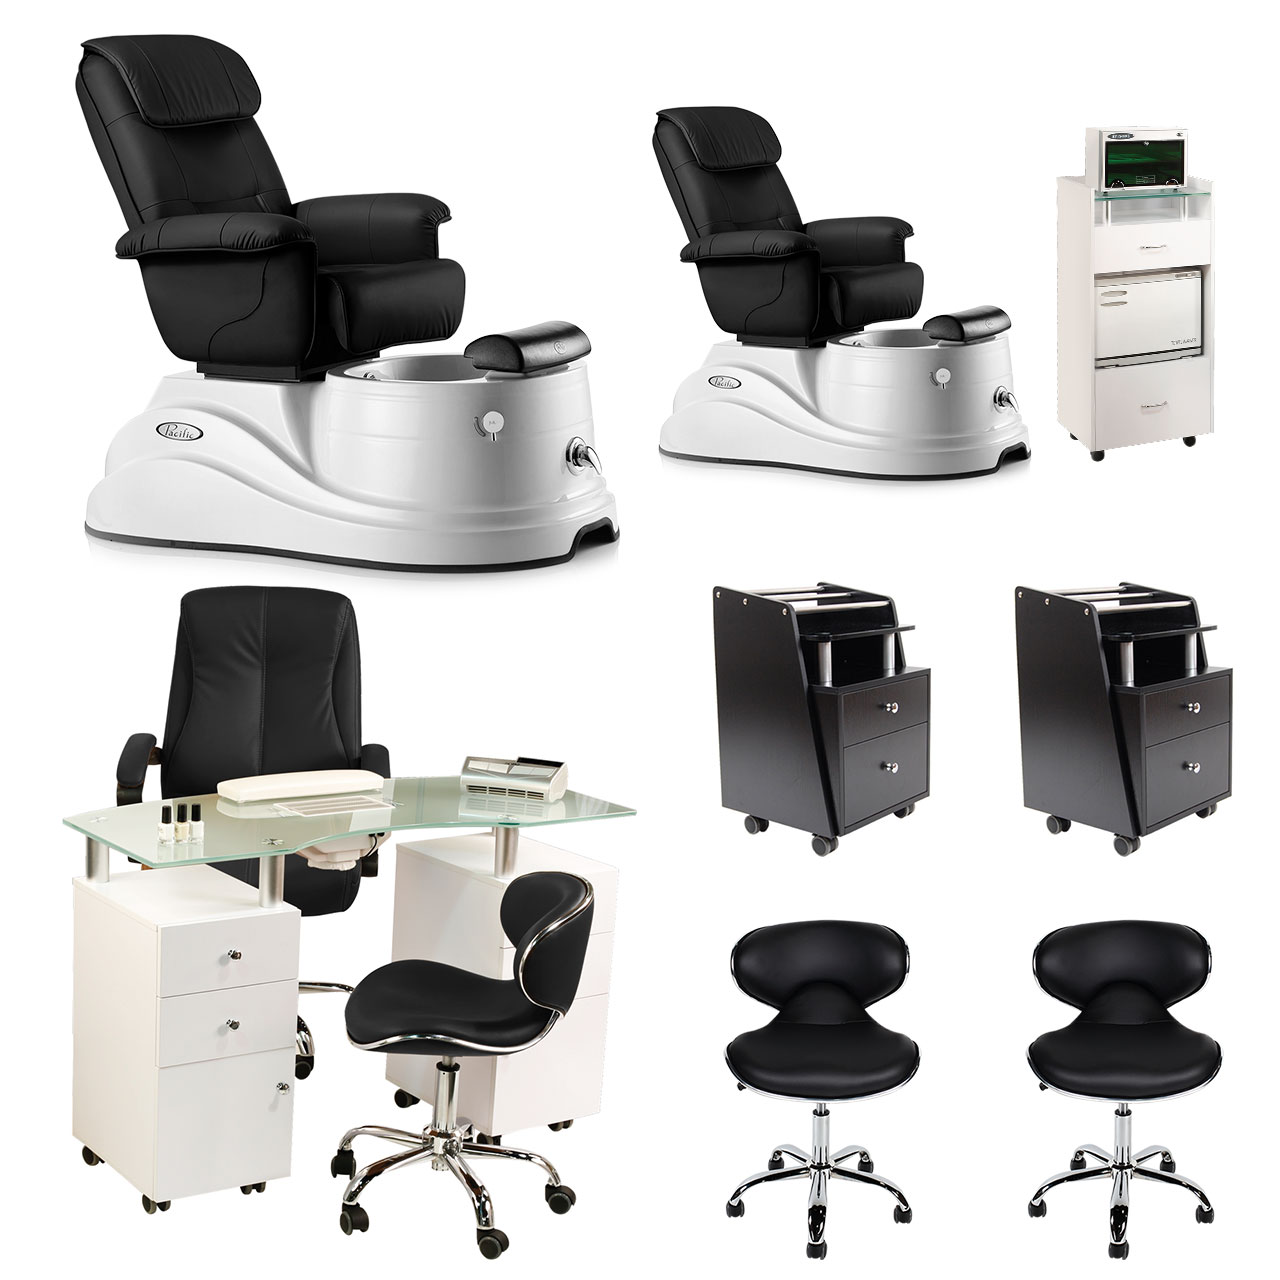 Black 2 Pacific DS Pedicure Chair Package & Manicure Station  main product image